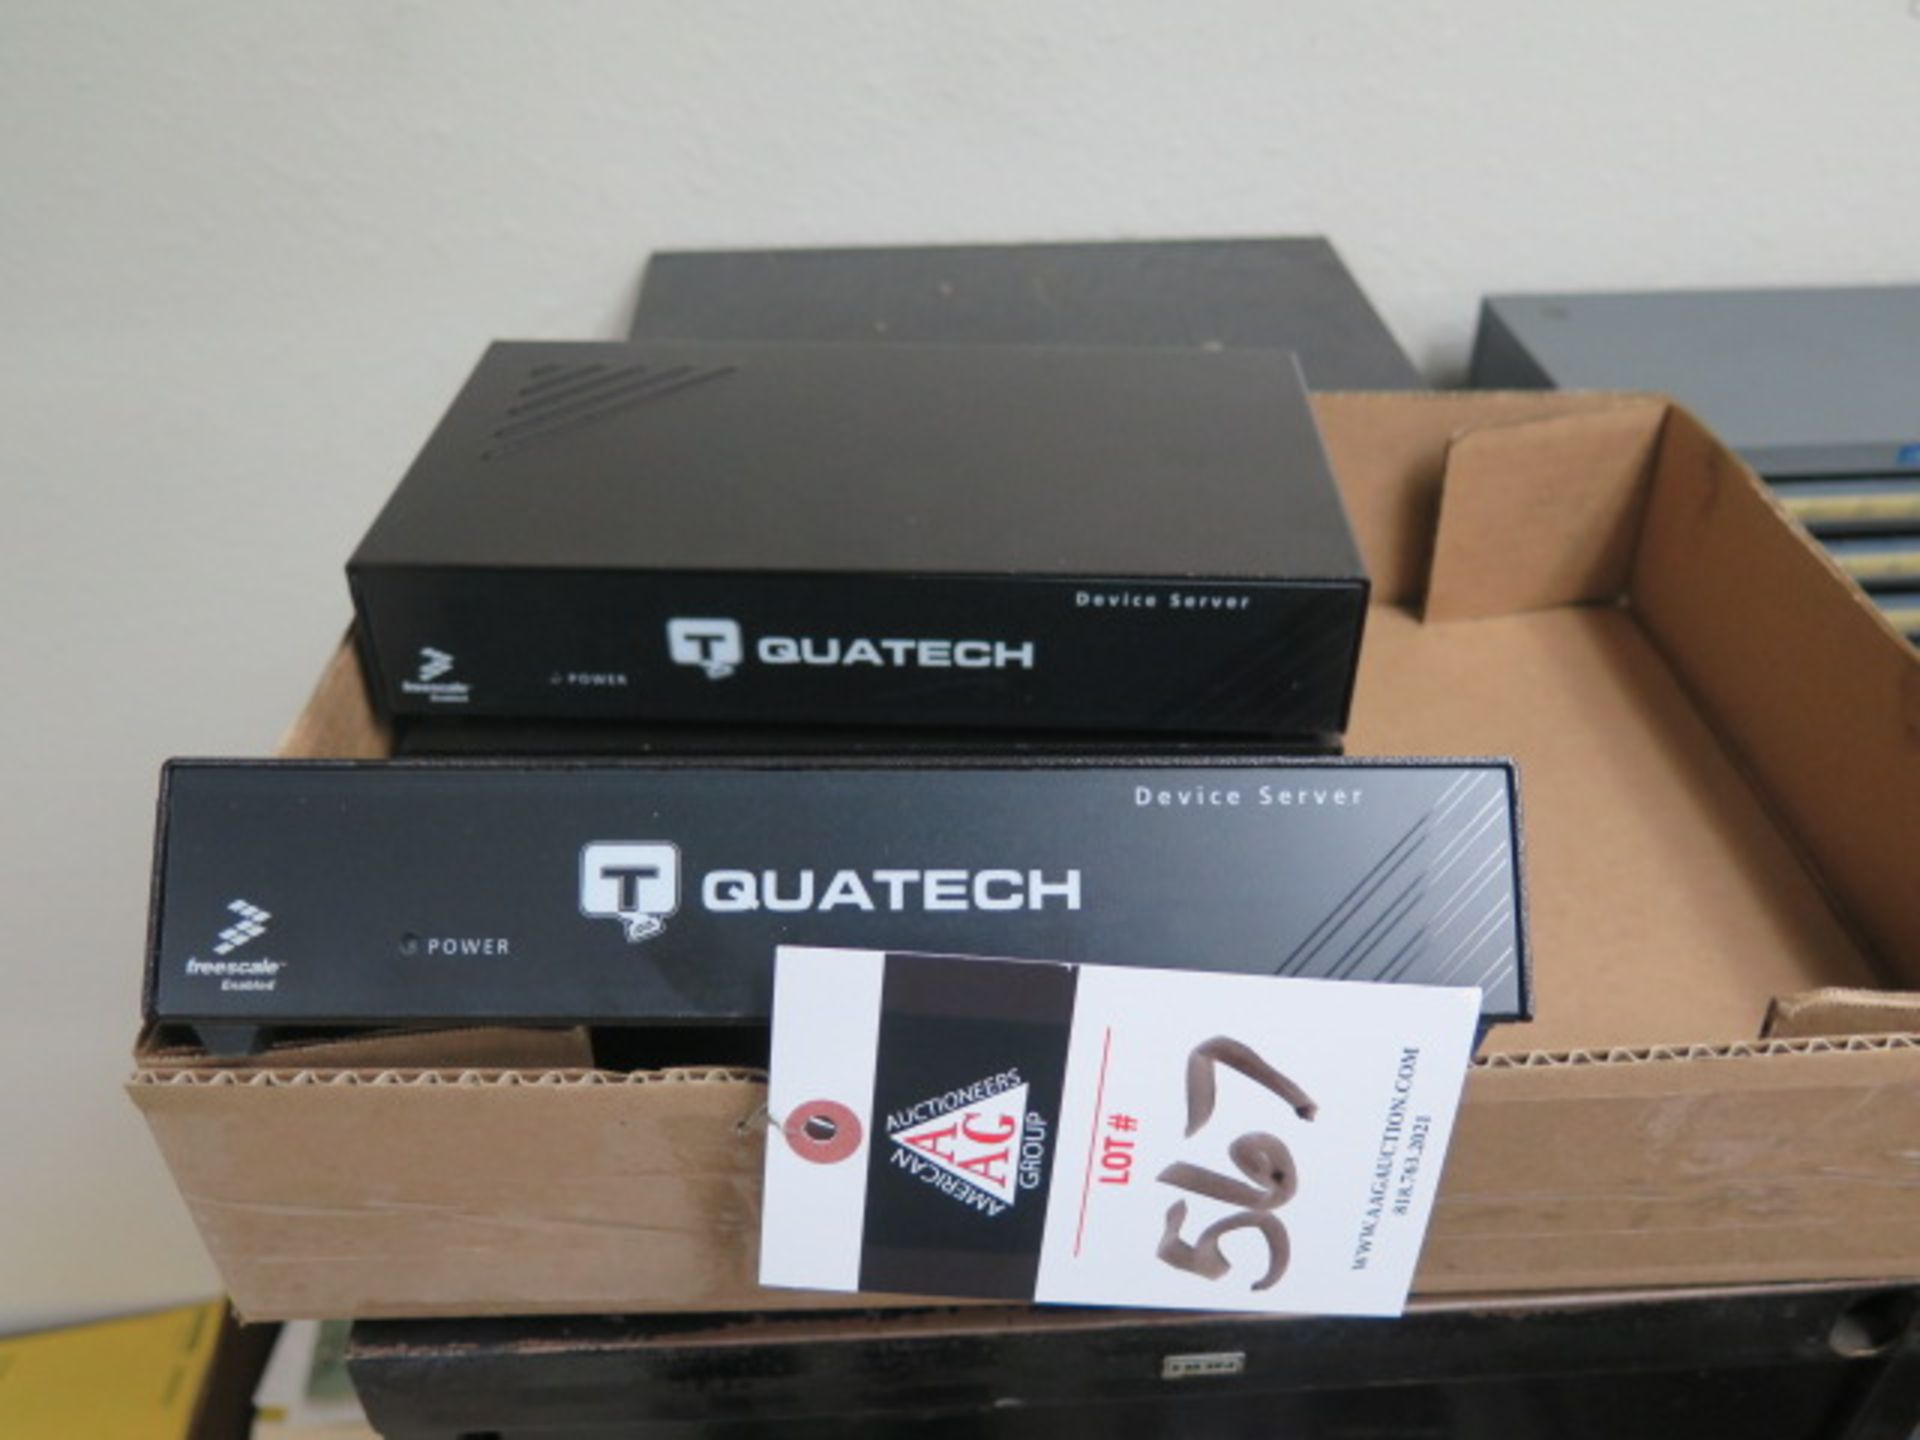 Quatech ESE-100D-SS G Device Servers (3) (SOLD AS-IS - NO WARRANTY)